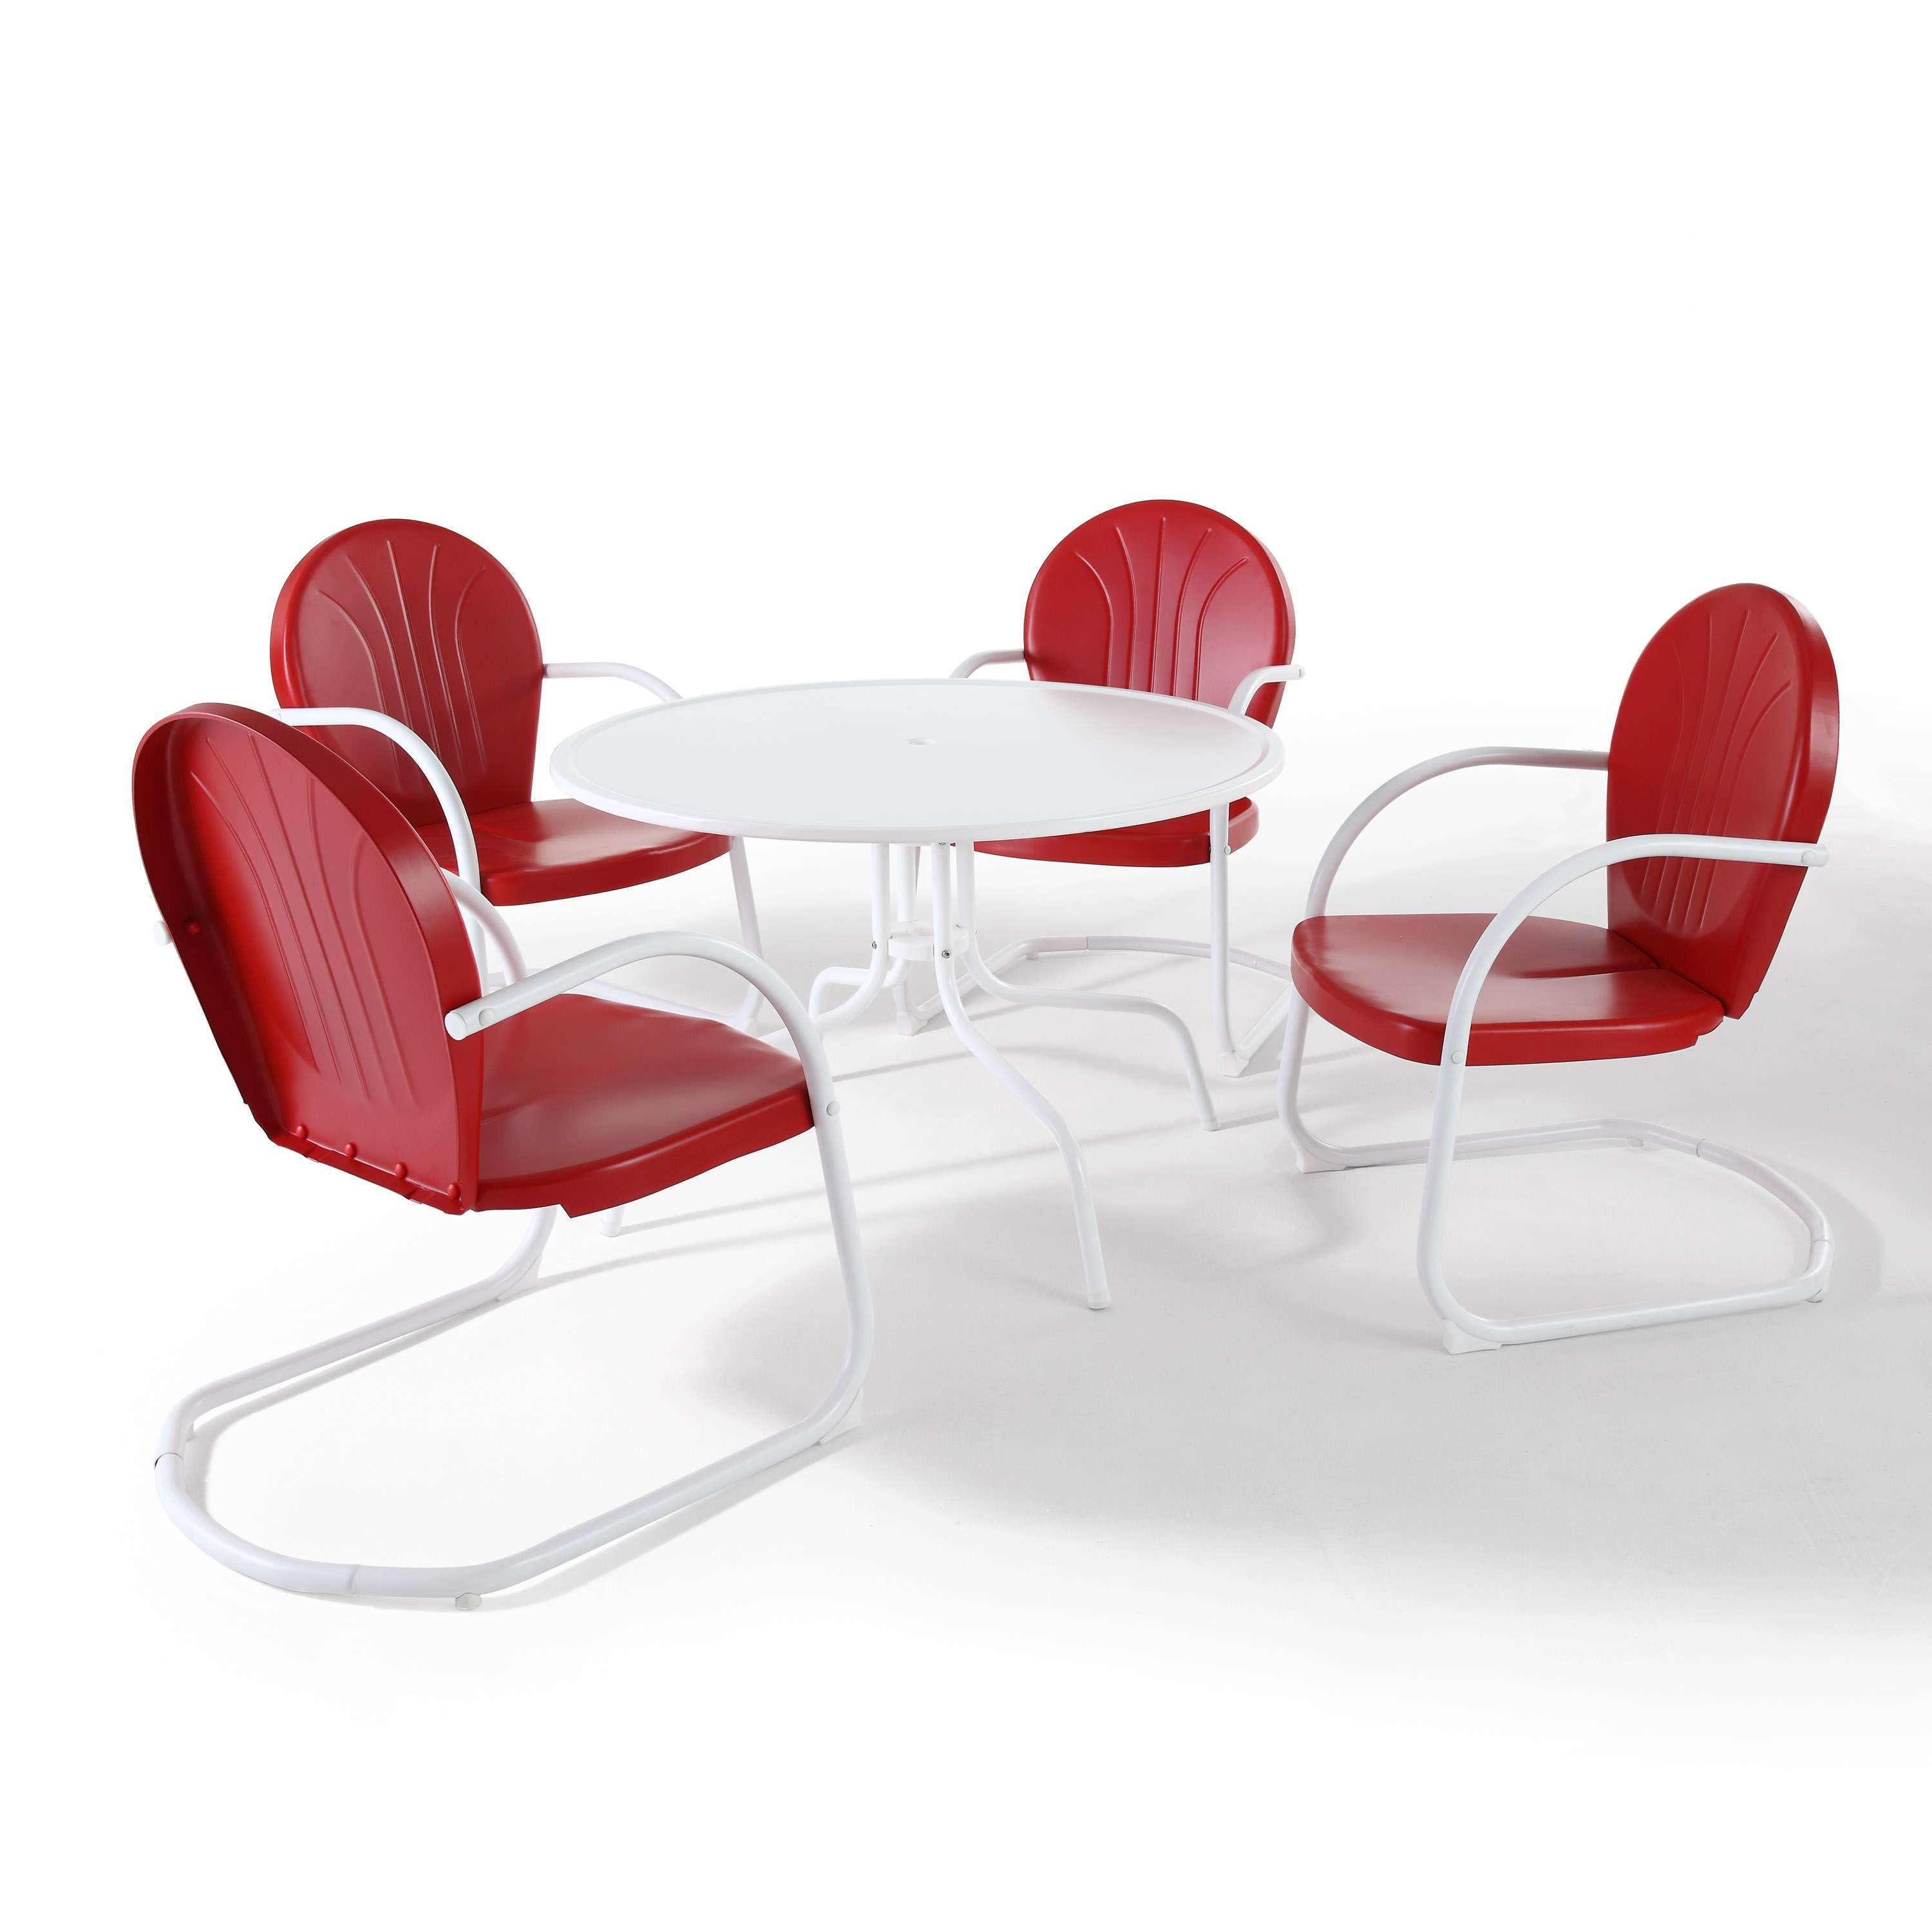 Griffith metal 5 piece outdoor dining set in white finish with red finish chairs